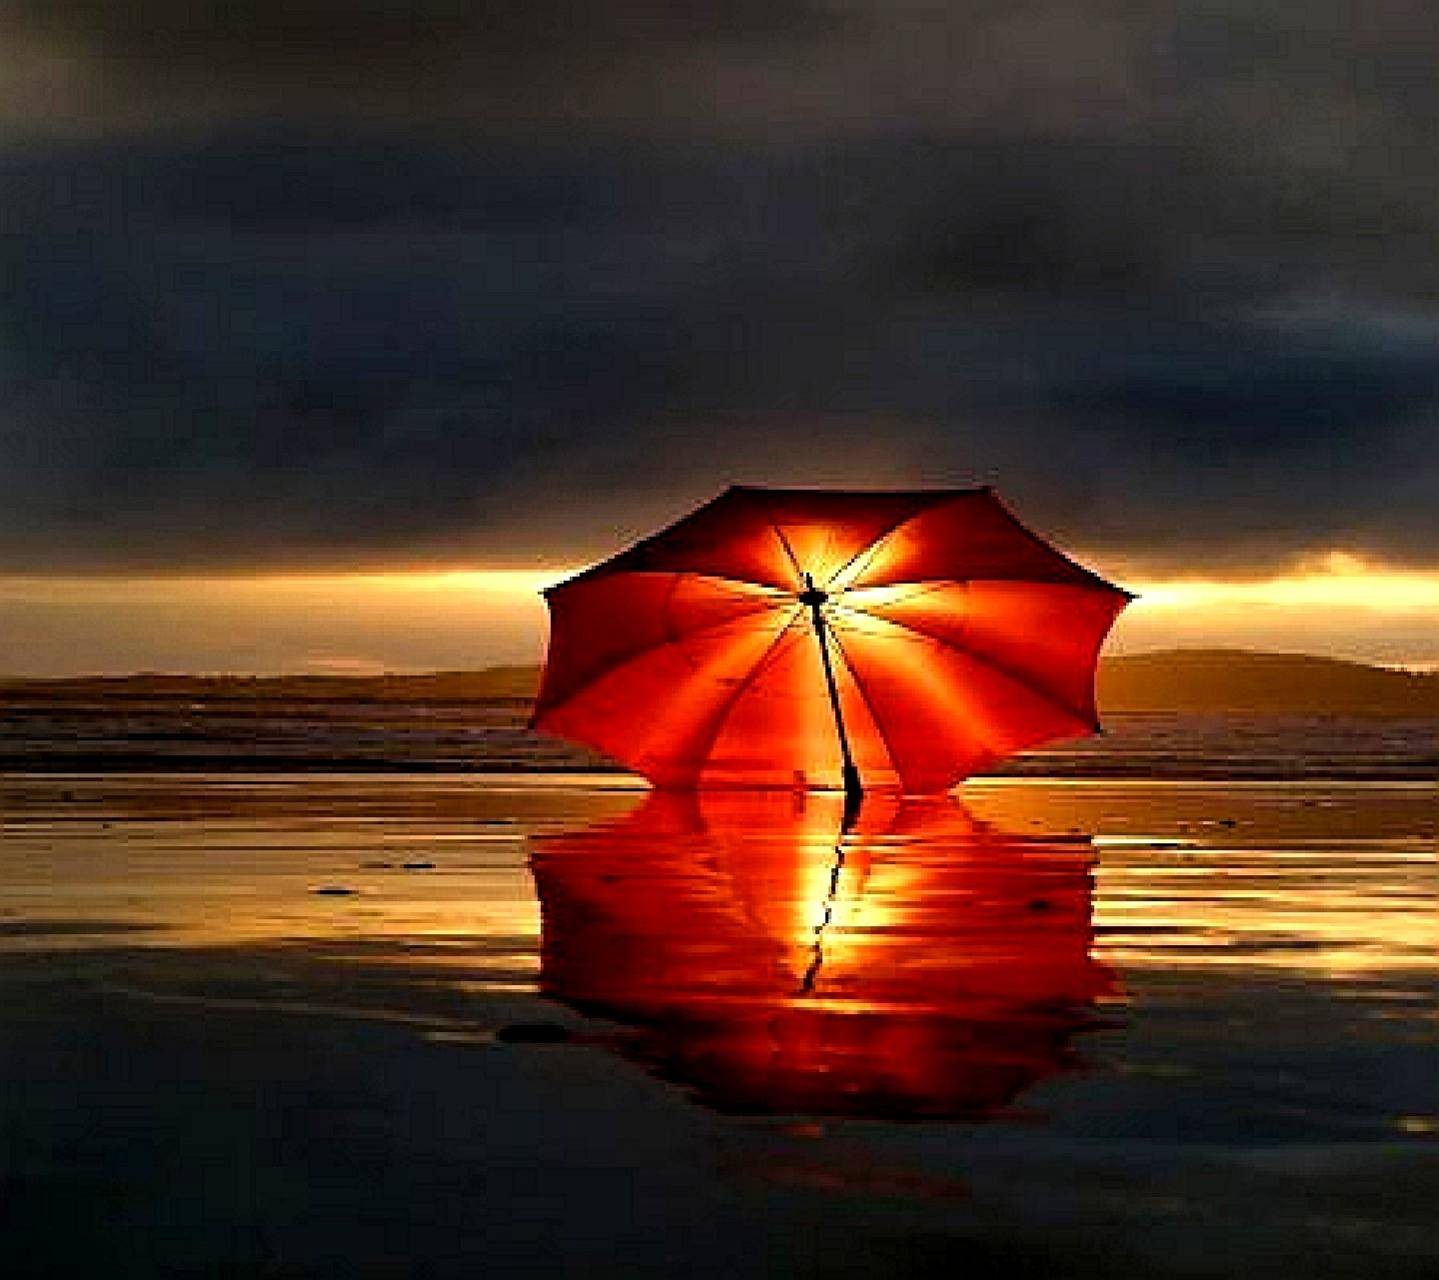 Red Umbrella Wallpaper By X